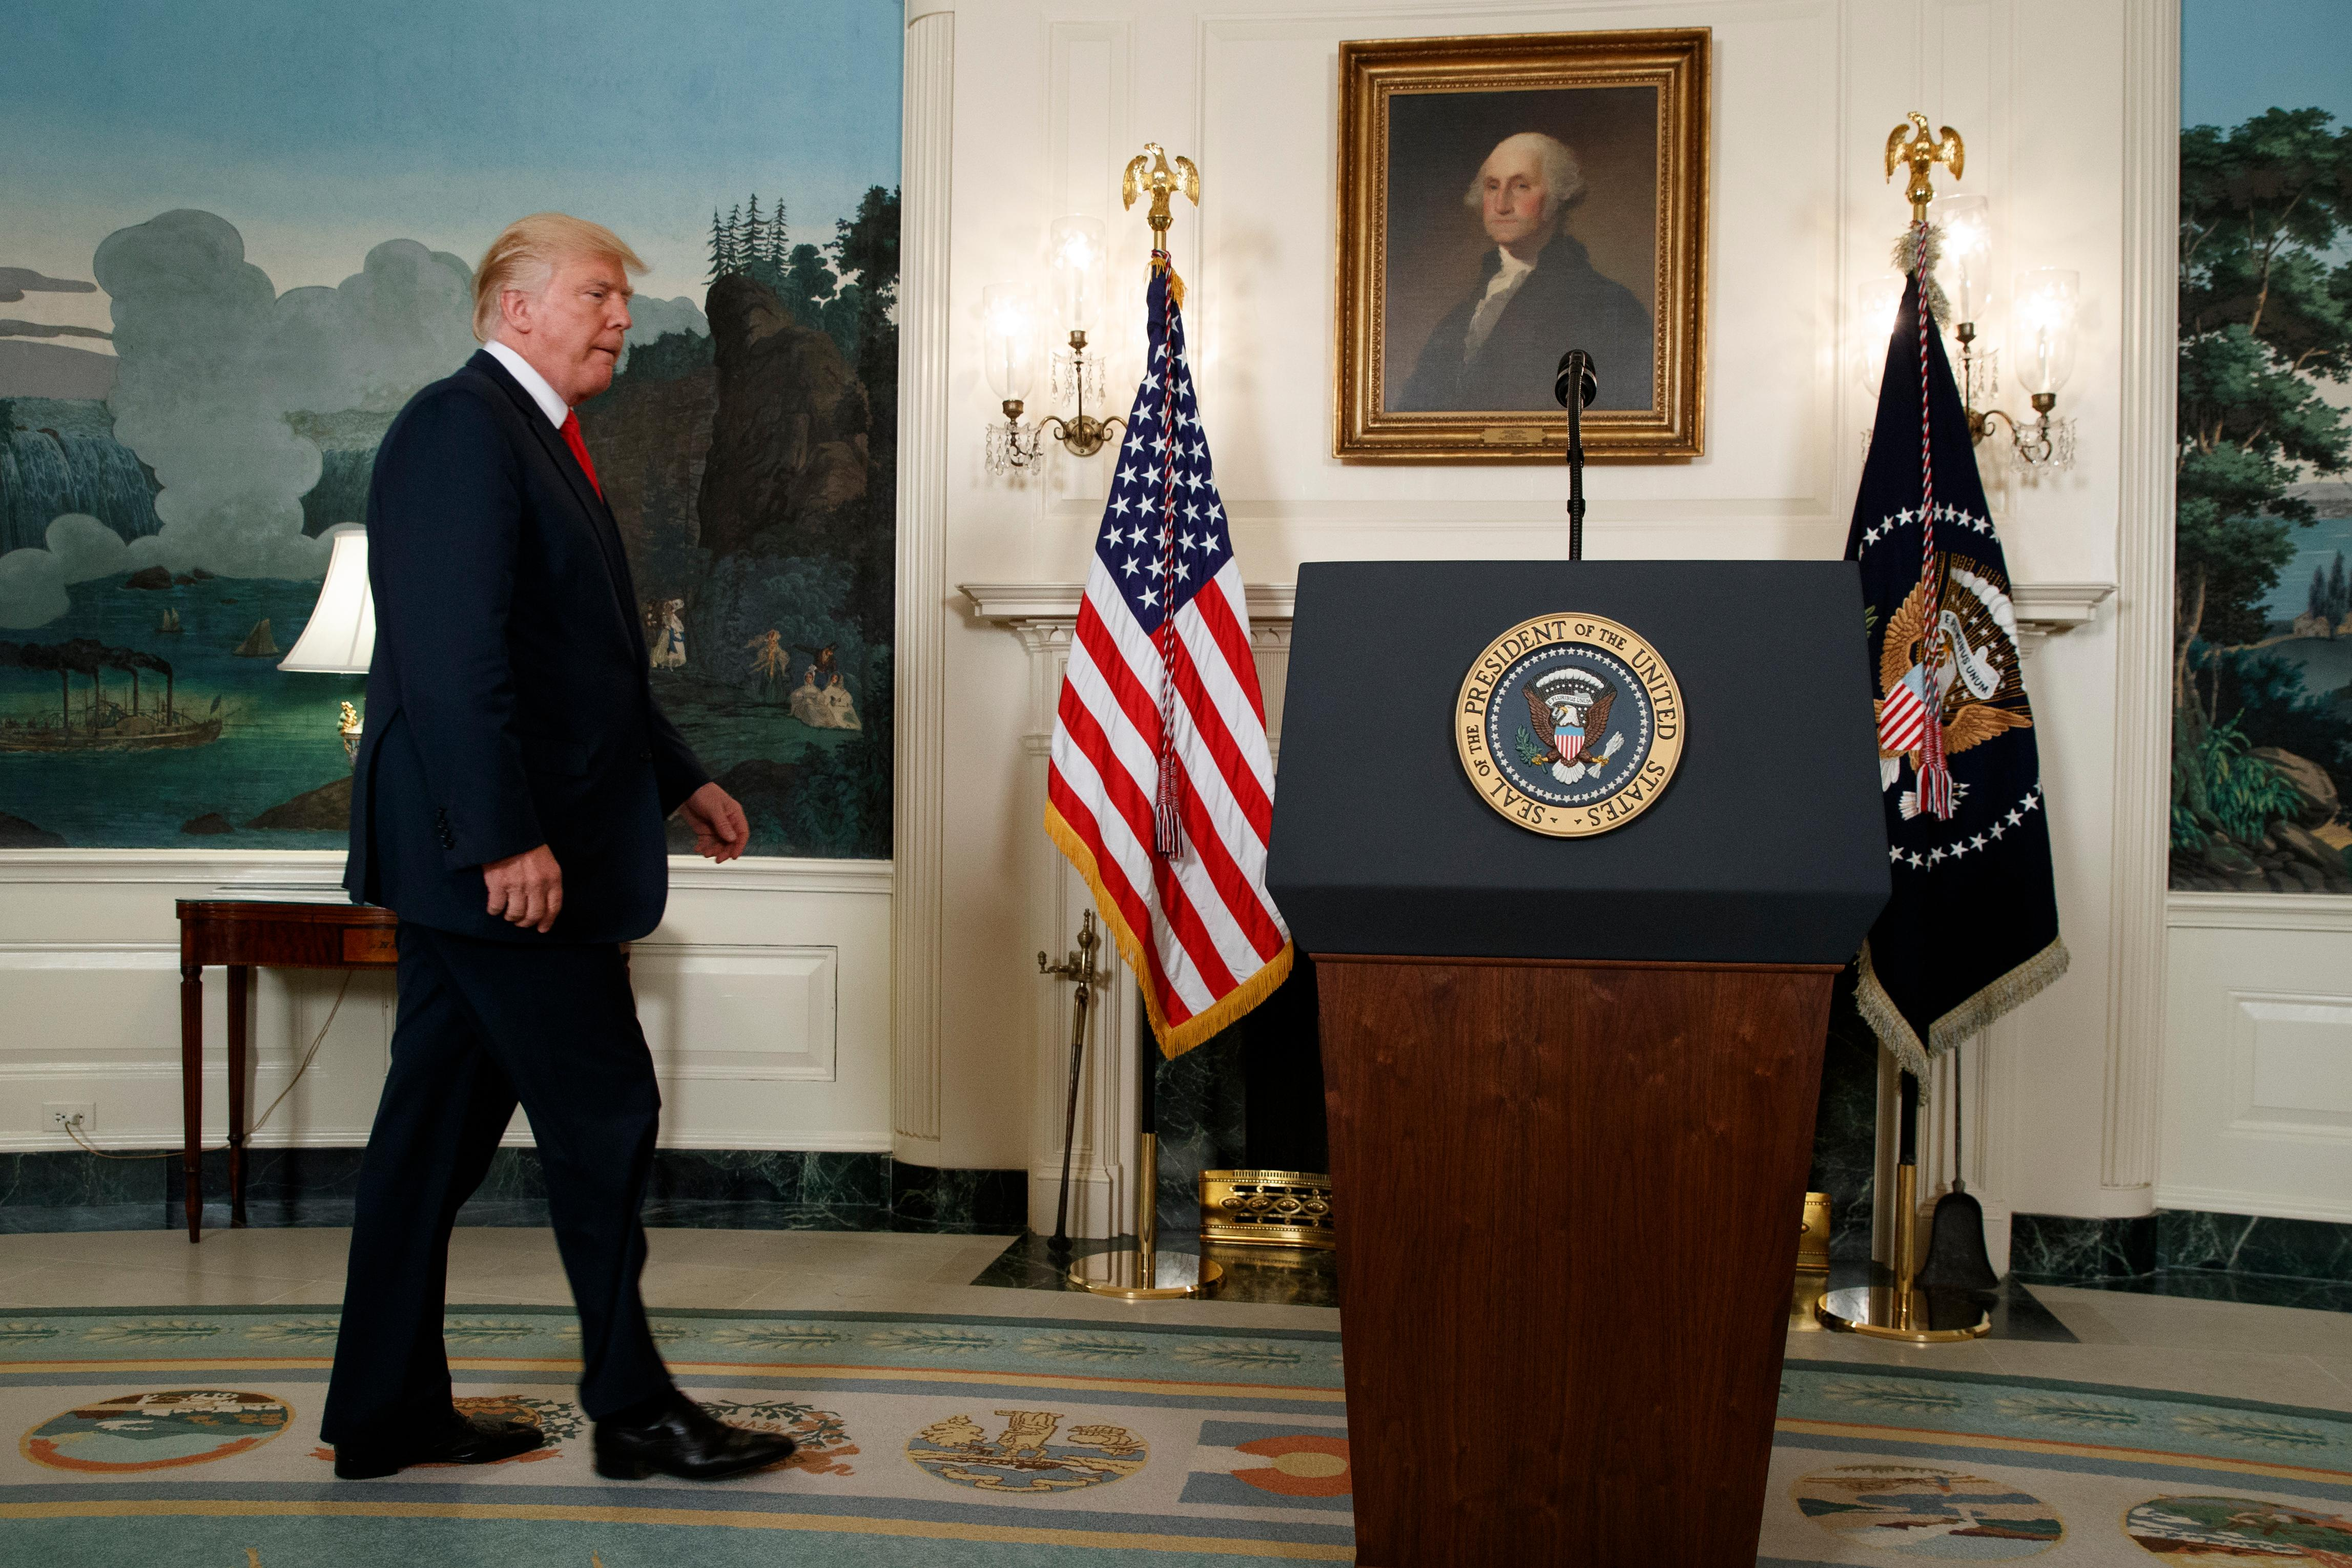 President Donald Trump arrives to speak about the deadly white nationalist rally in Charlottesville, Va., Monday, Aug. 14, 2017, in the Diplomatic Room of the White House in Washington. (AP Photo/Evan Vucci)